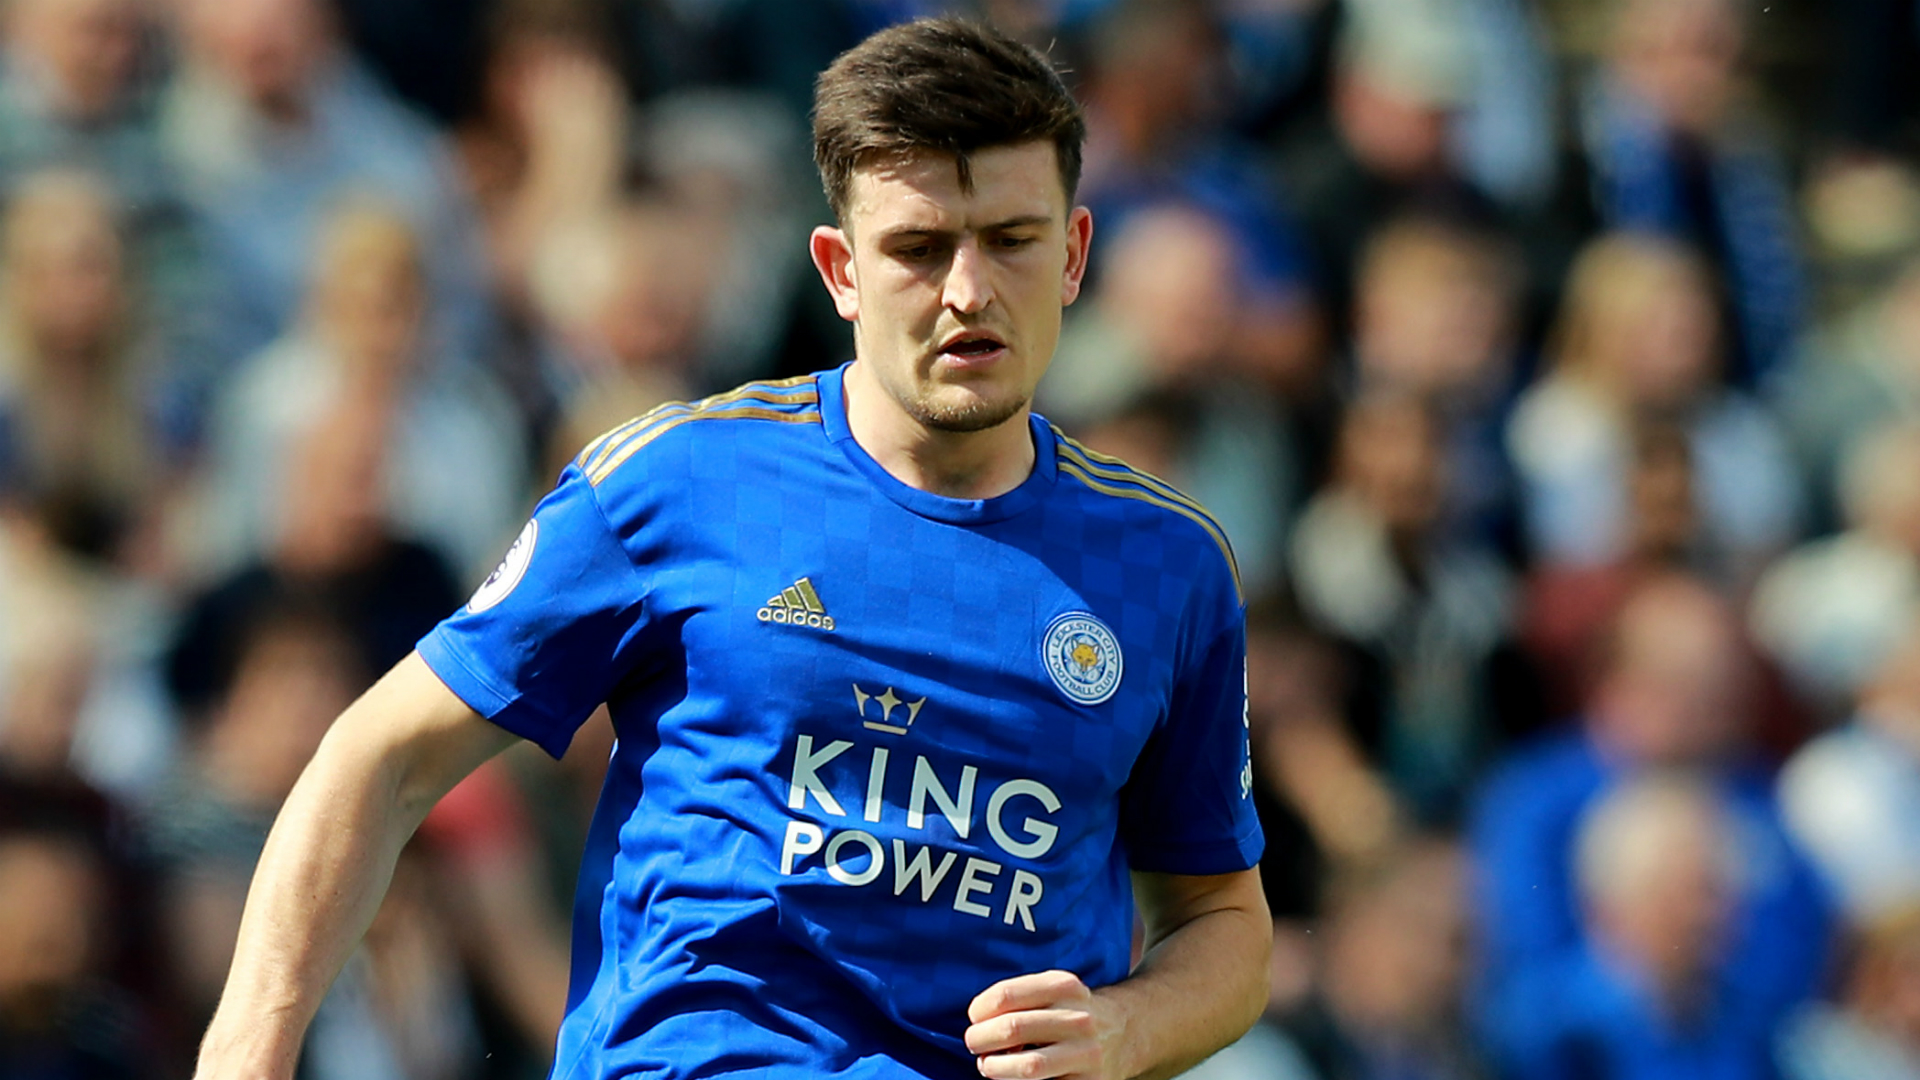 Rumour Has It: Man United agree world-record £80m deal for Maguire